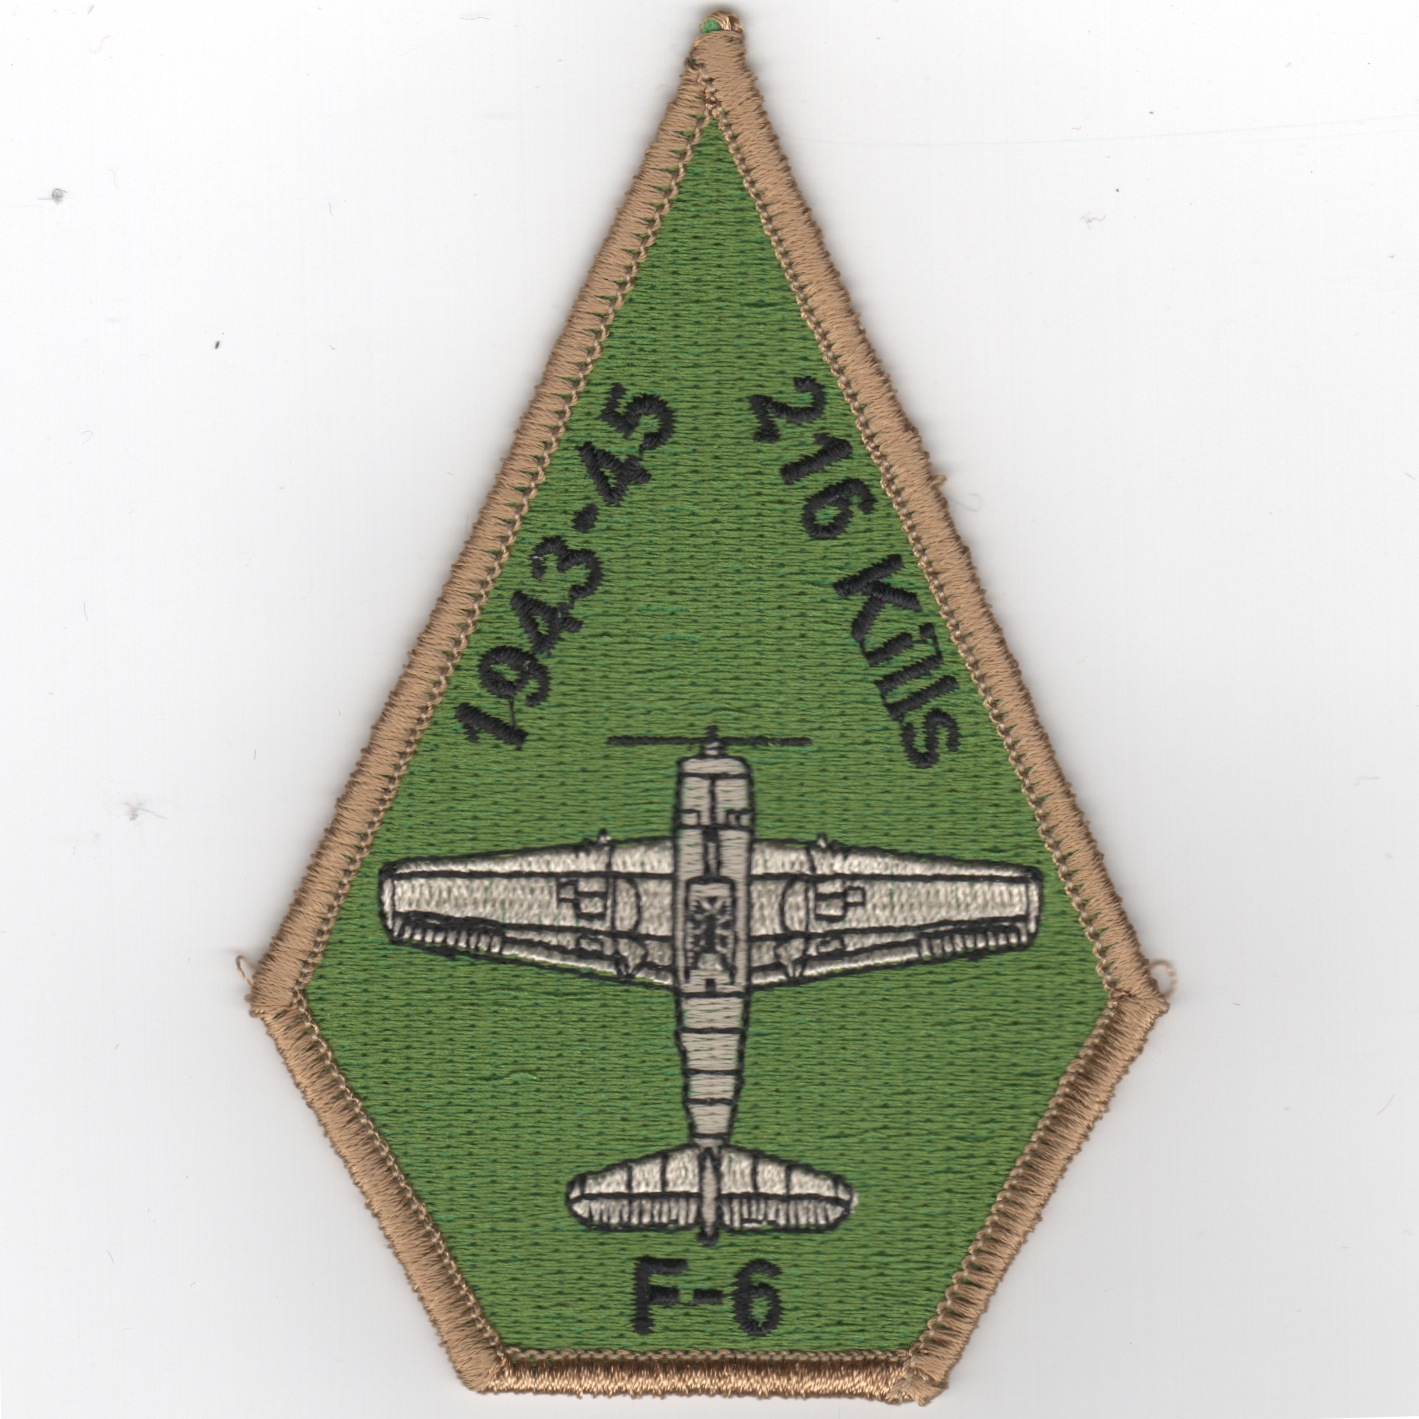 VFA-2 'F6 216 Kills' Coffin Patch